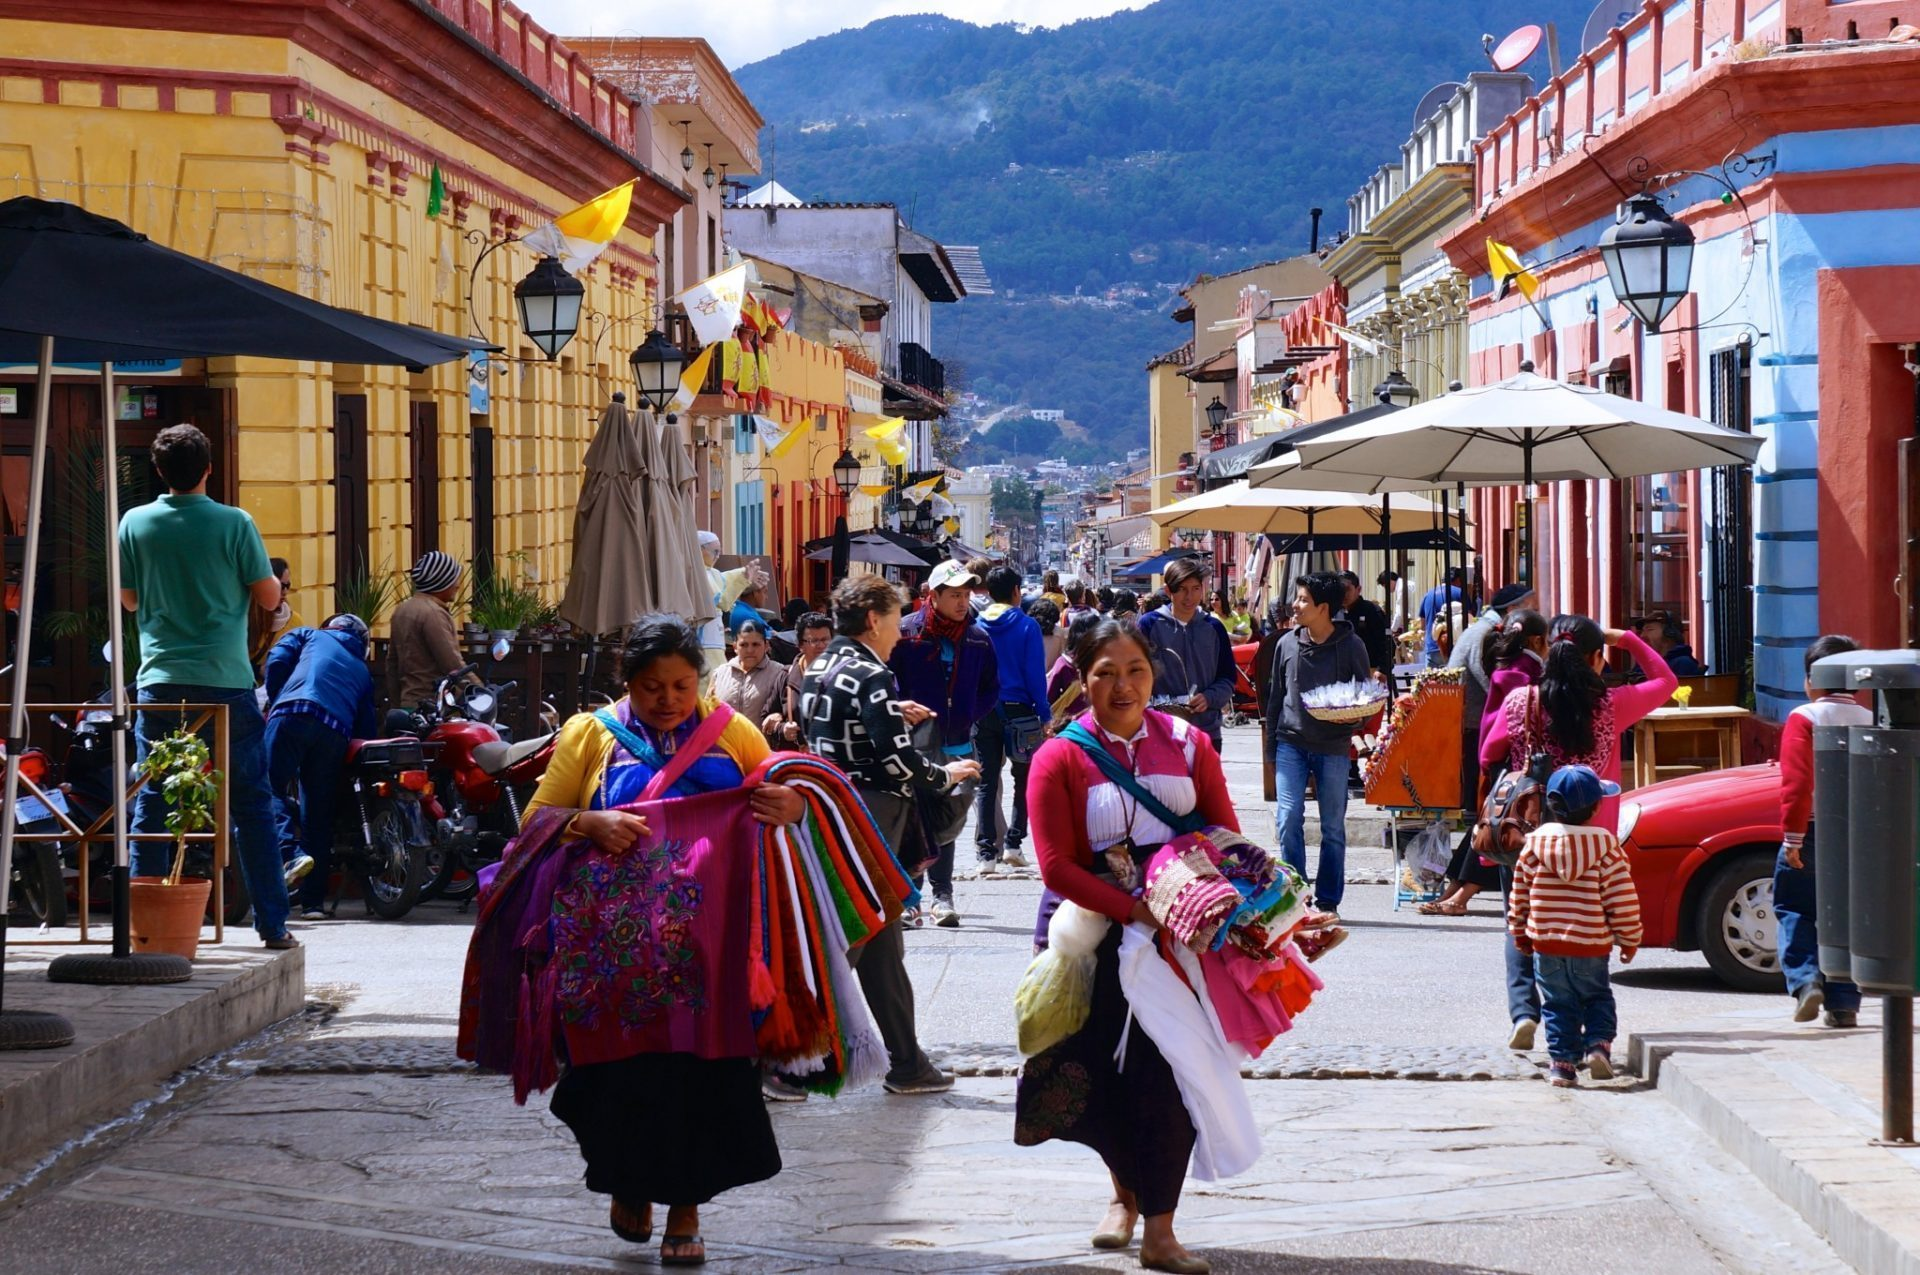 Best 15 things to do in san cristobal de las casas mexico - Casas en pueblos ...